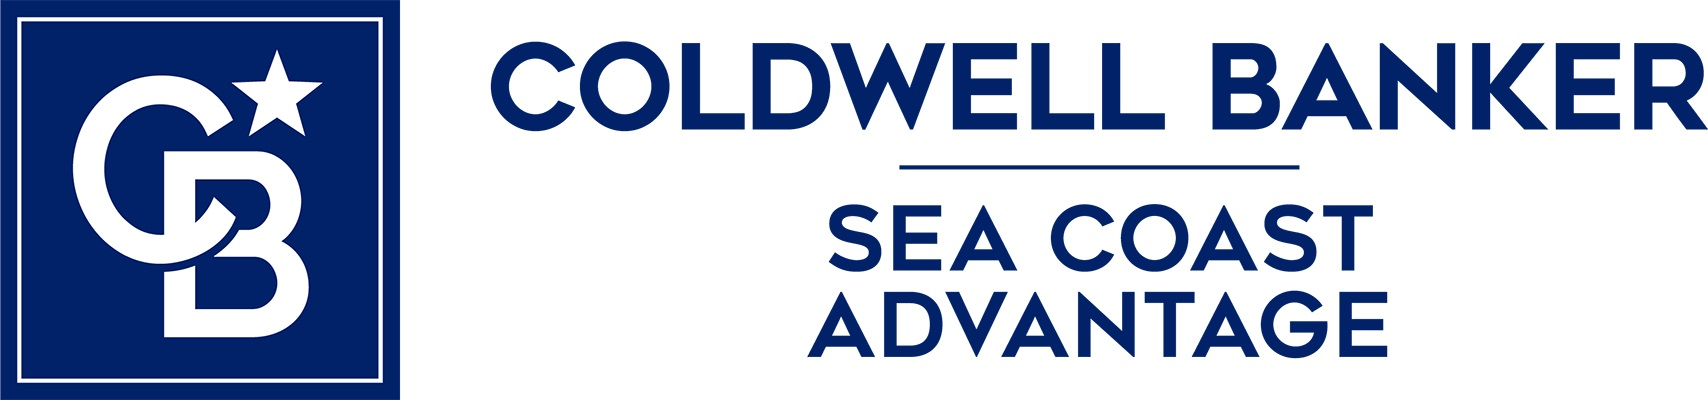 Beth Pavia - Coldwell Banker Sea Coast Advantage Realty